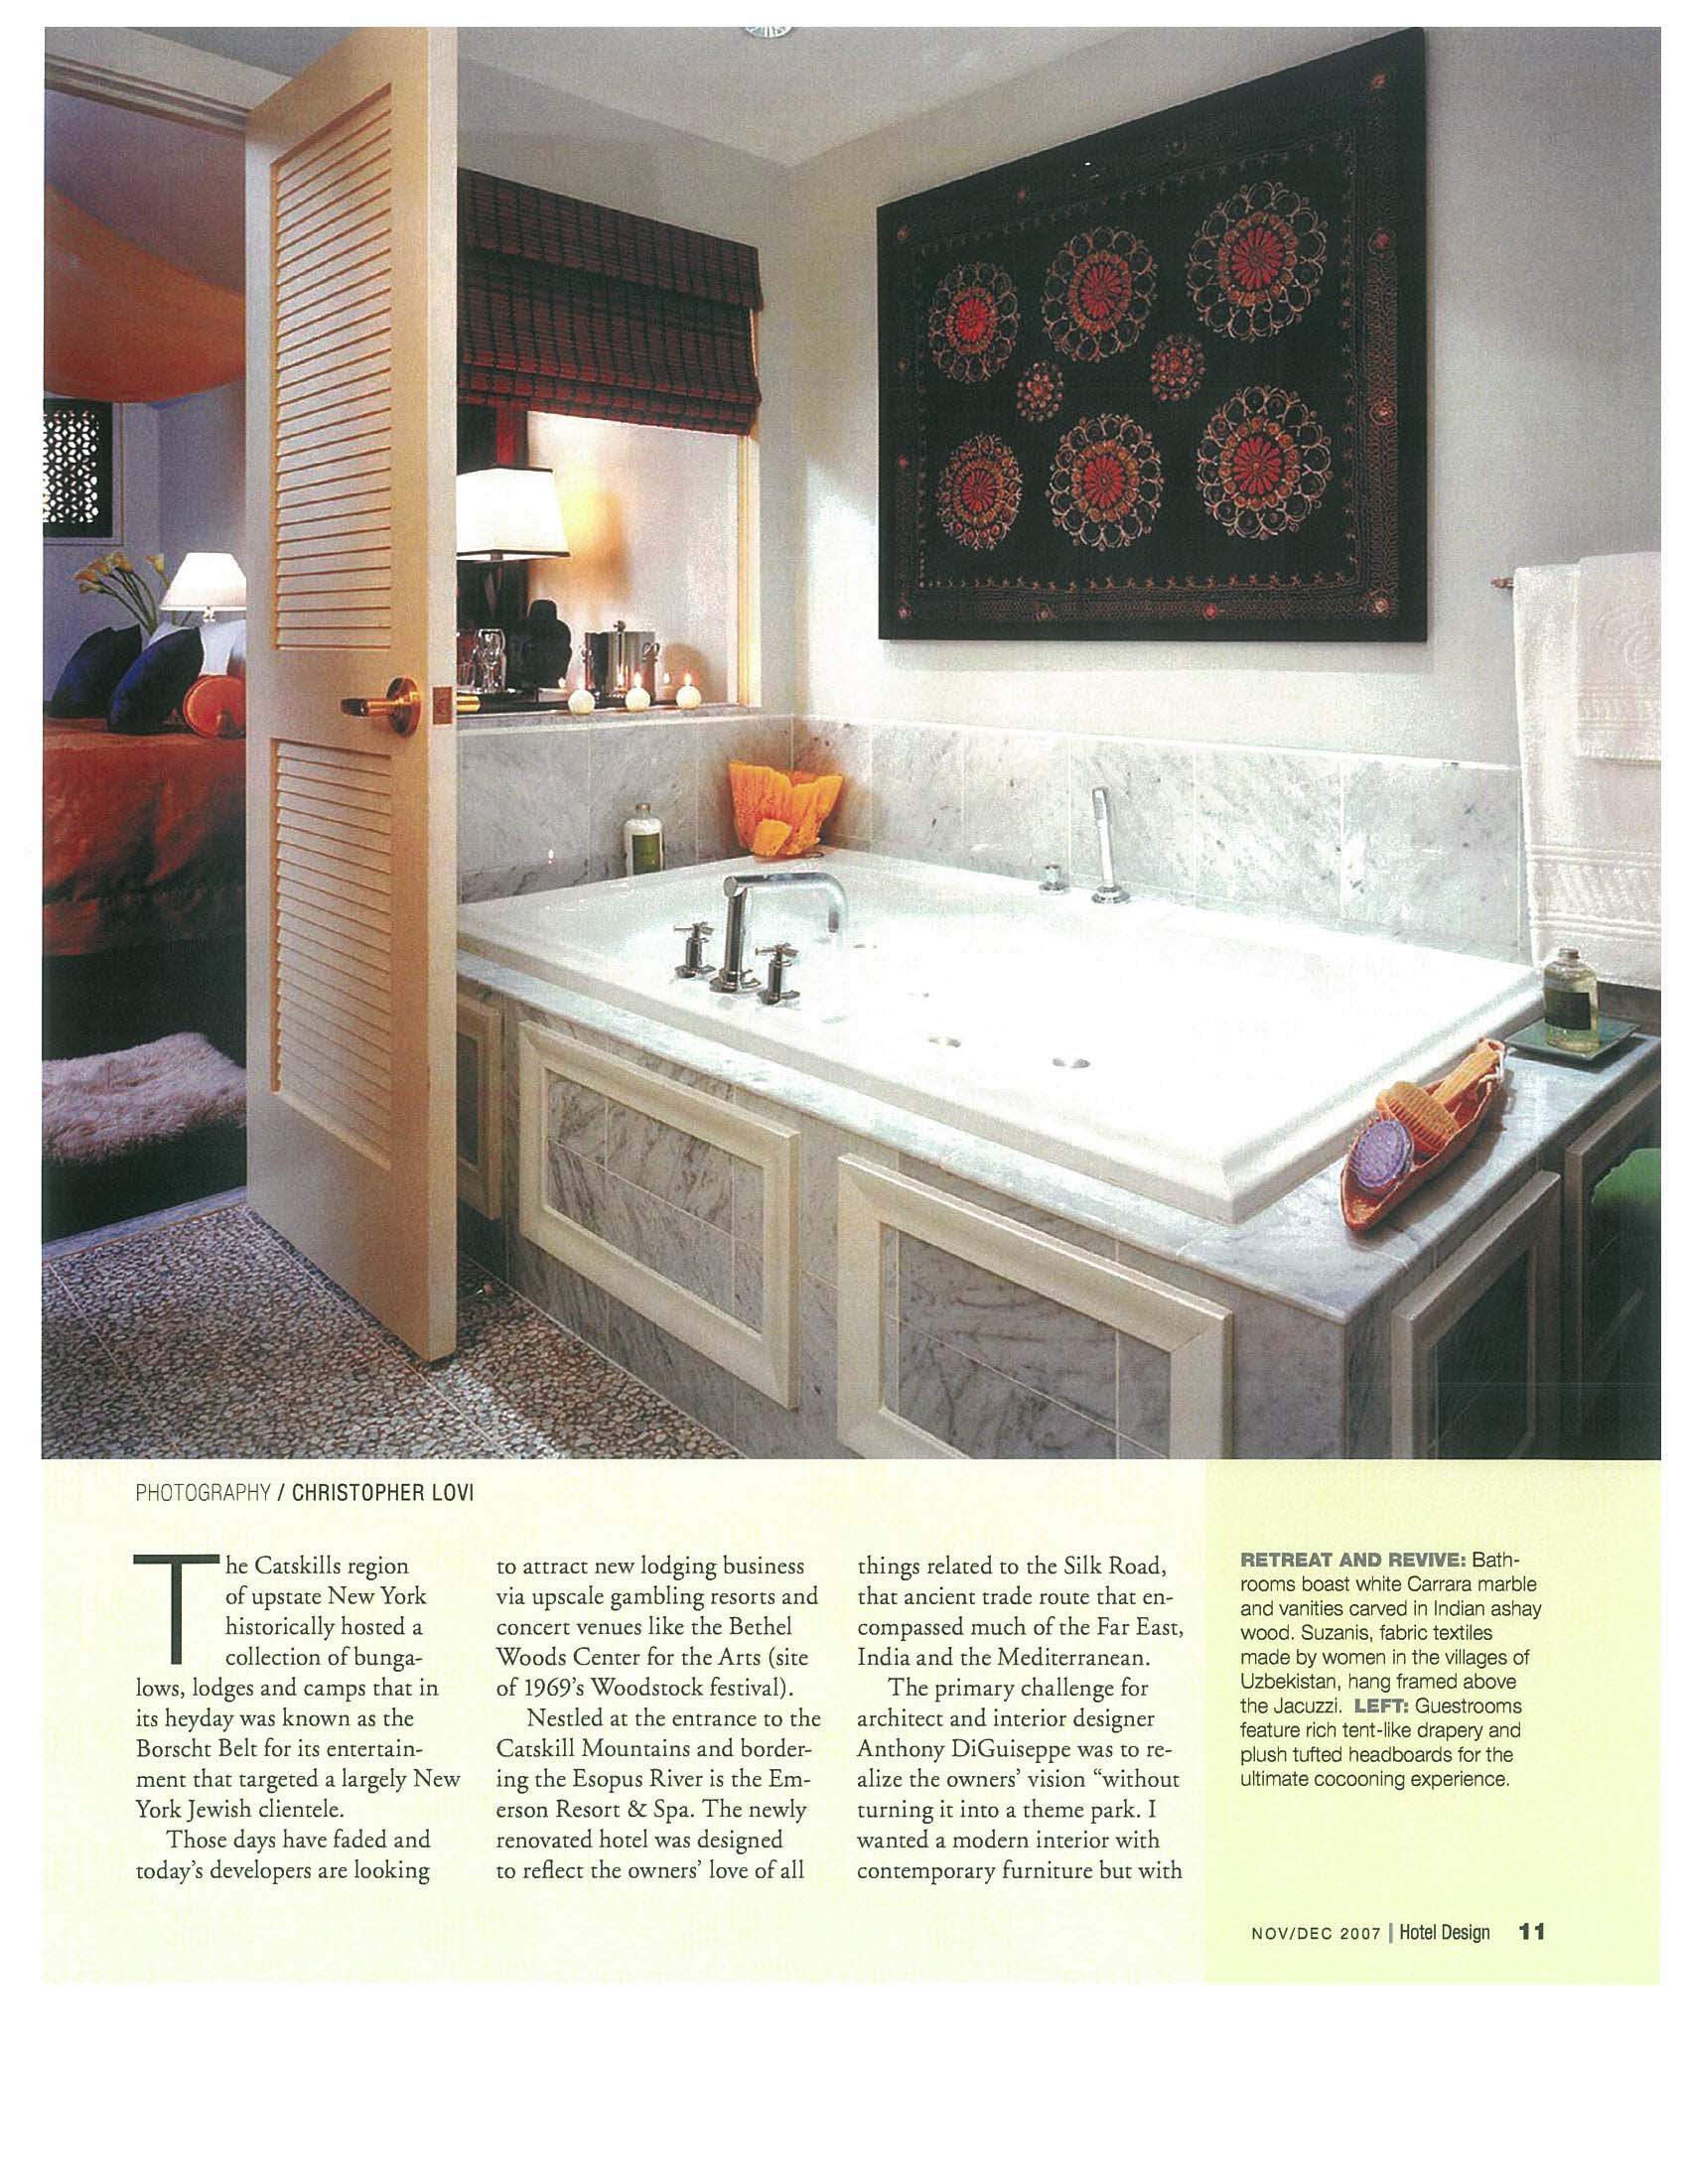 Emerson_Hotel_Design_Article_Page_3